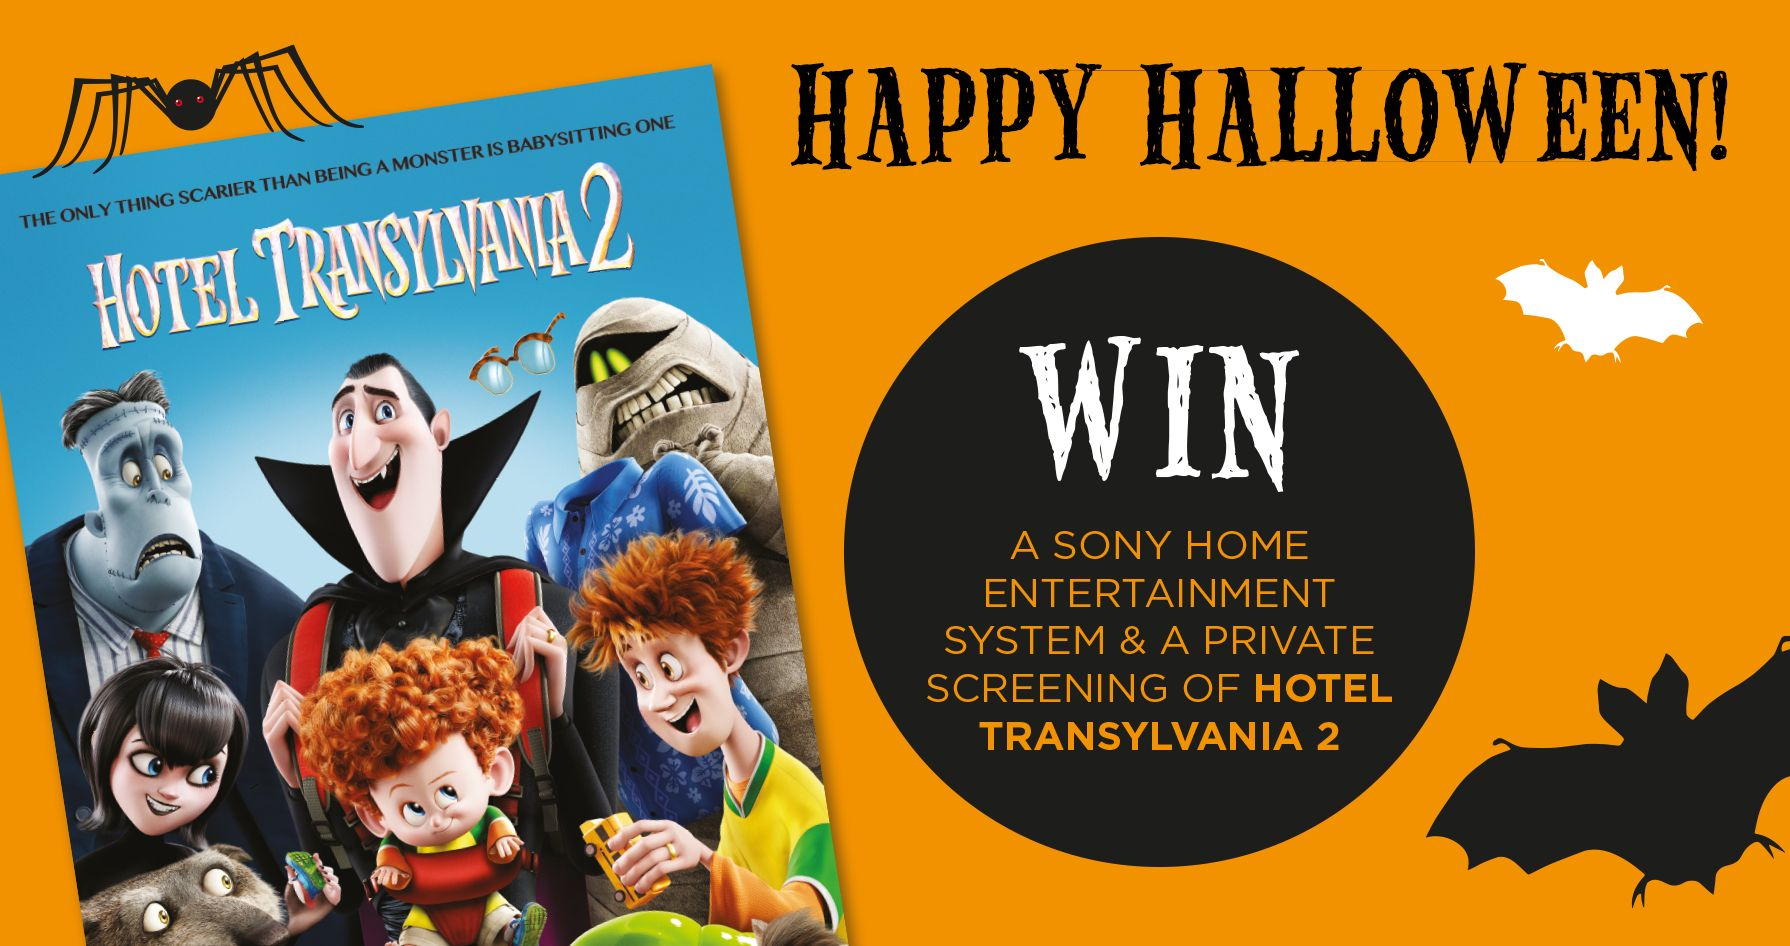 WIN A SONY HOME ENTERTAINMENT SYSTEM WITH HOTEL TRANSYLVANIA 2